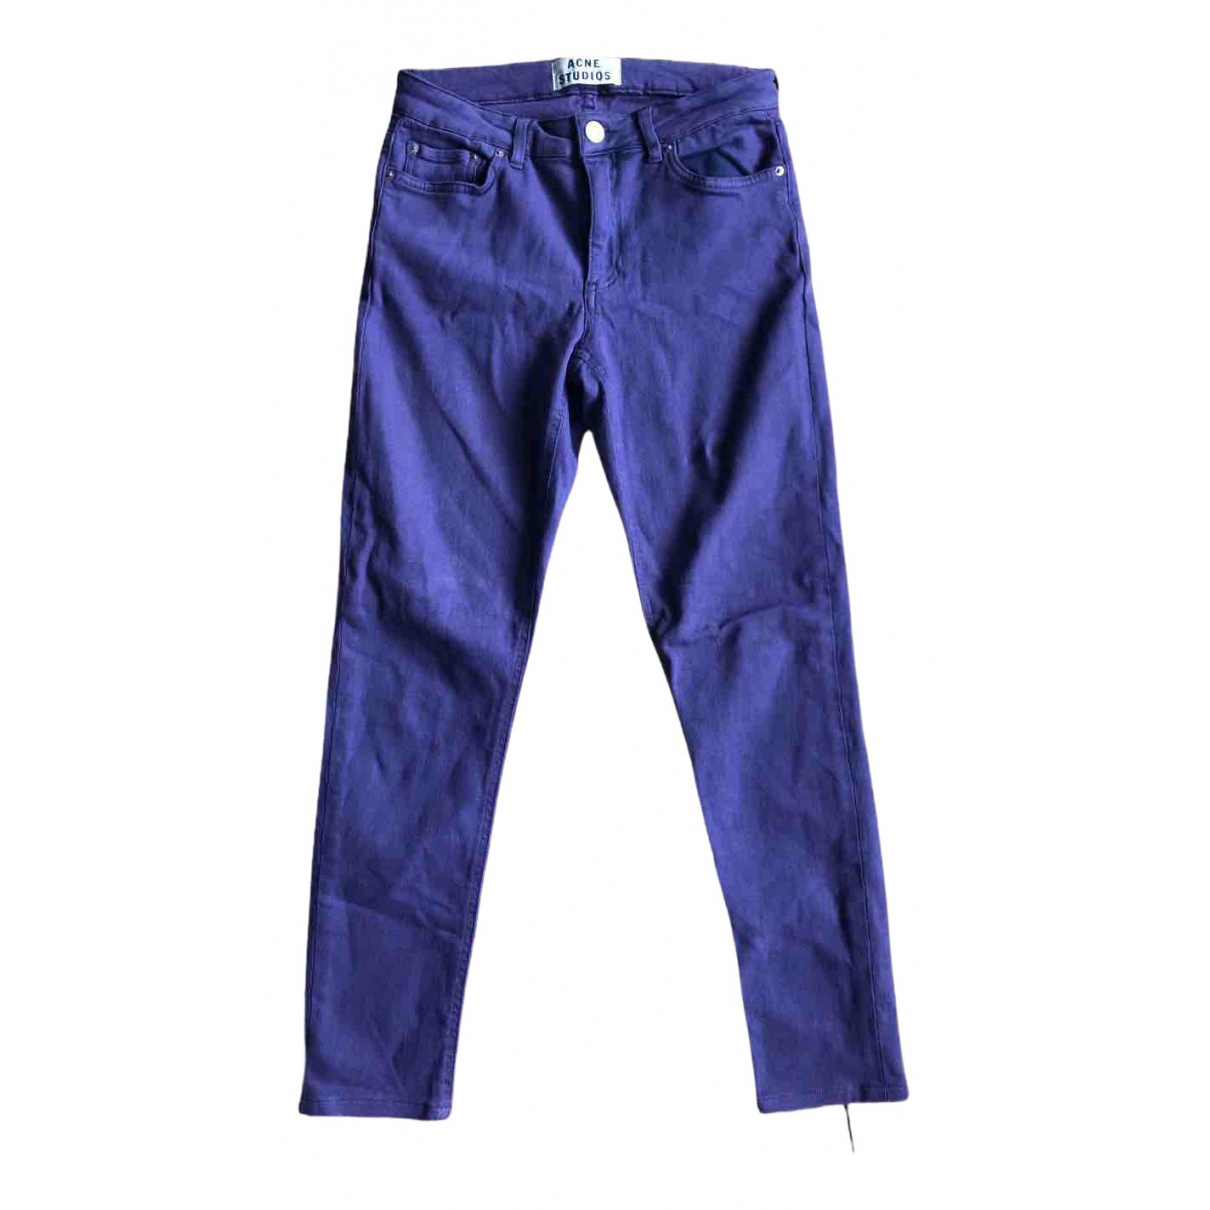 Acne Studios Skin 5 Purple Cotton - elasthane Jeans for Women 28 US